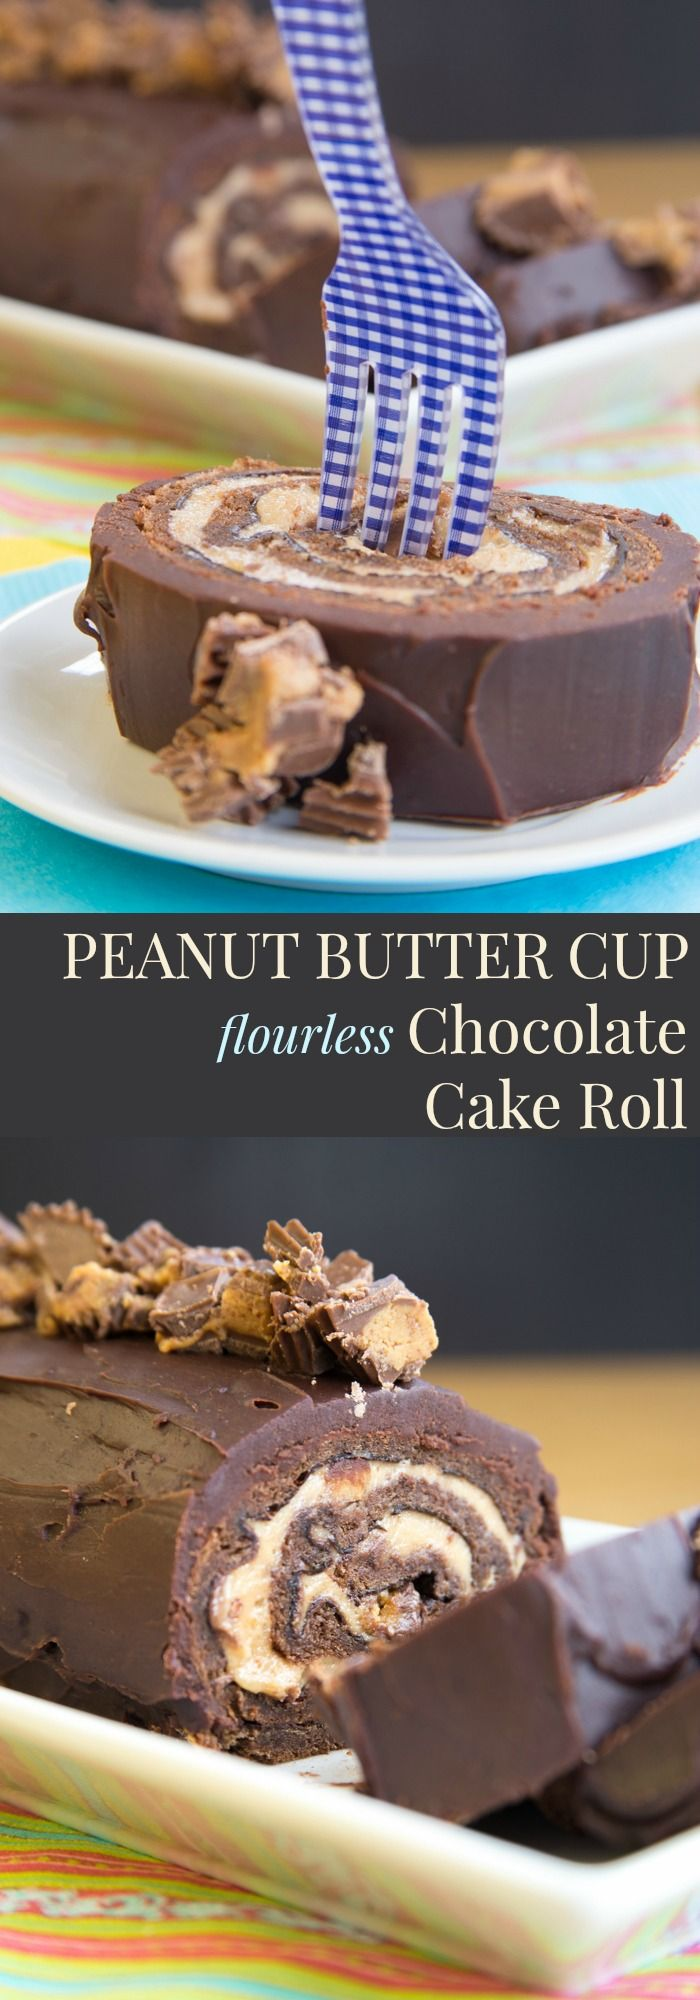 Peanut Butter Cup Flourless Chocolate Cake Roll - fill a tender sponge cake with peanut butter mousse studded with peanut butter cups and drench it in chocolate ganache for a decadent dessert recipe (gluten free too)! | cupcakesandkalechips.com